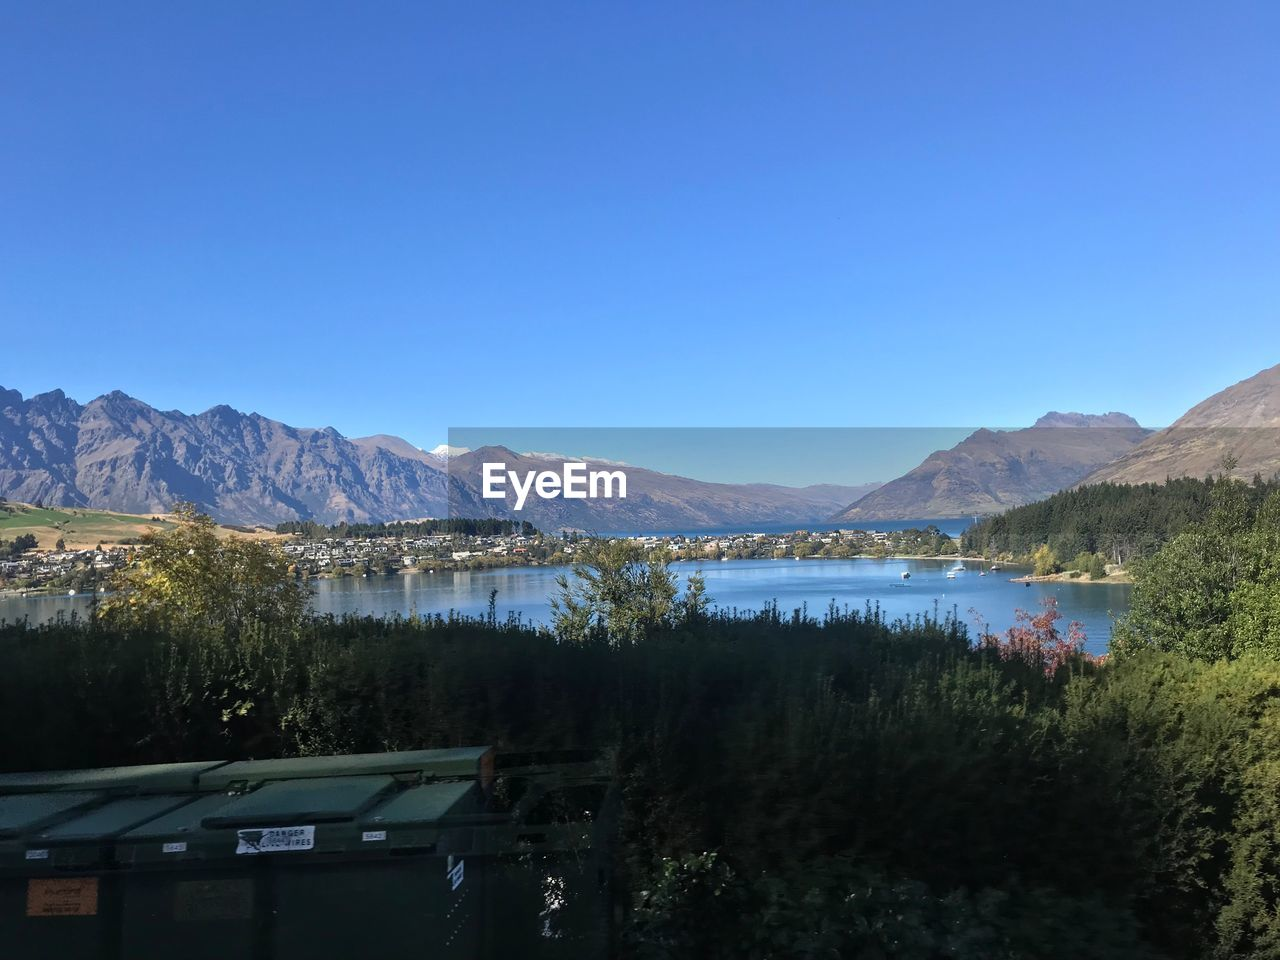 mountain, sky, scenics - nature, copy space, water, mountain range, lake, clear sky, plant, blue, beauty in nature, tree, tranquil scene, tranquility, nature, no people, day, non-urban scene, idyllic, outdoors